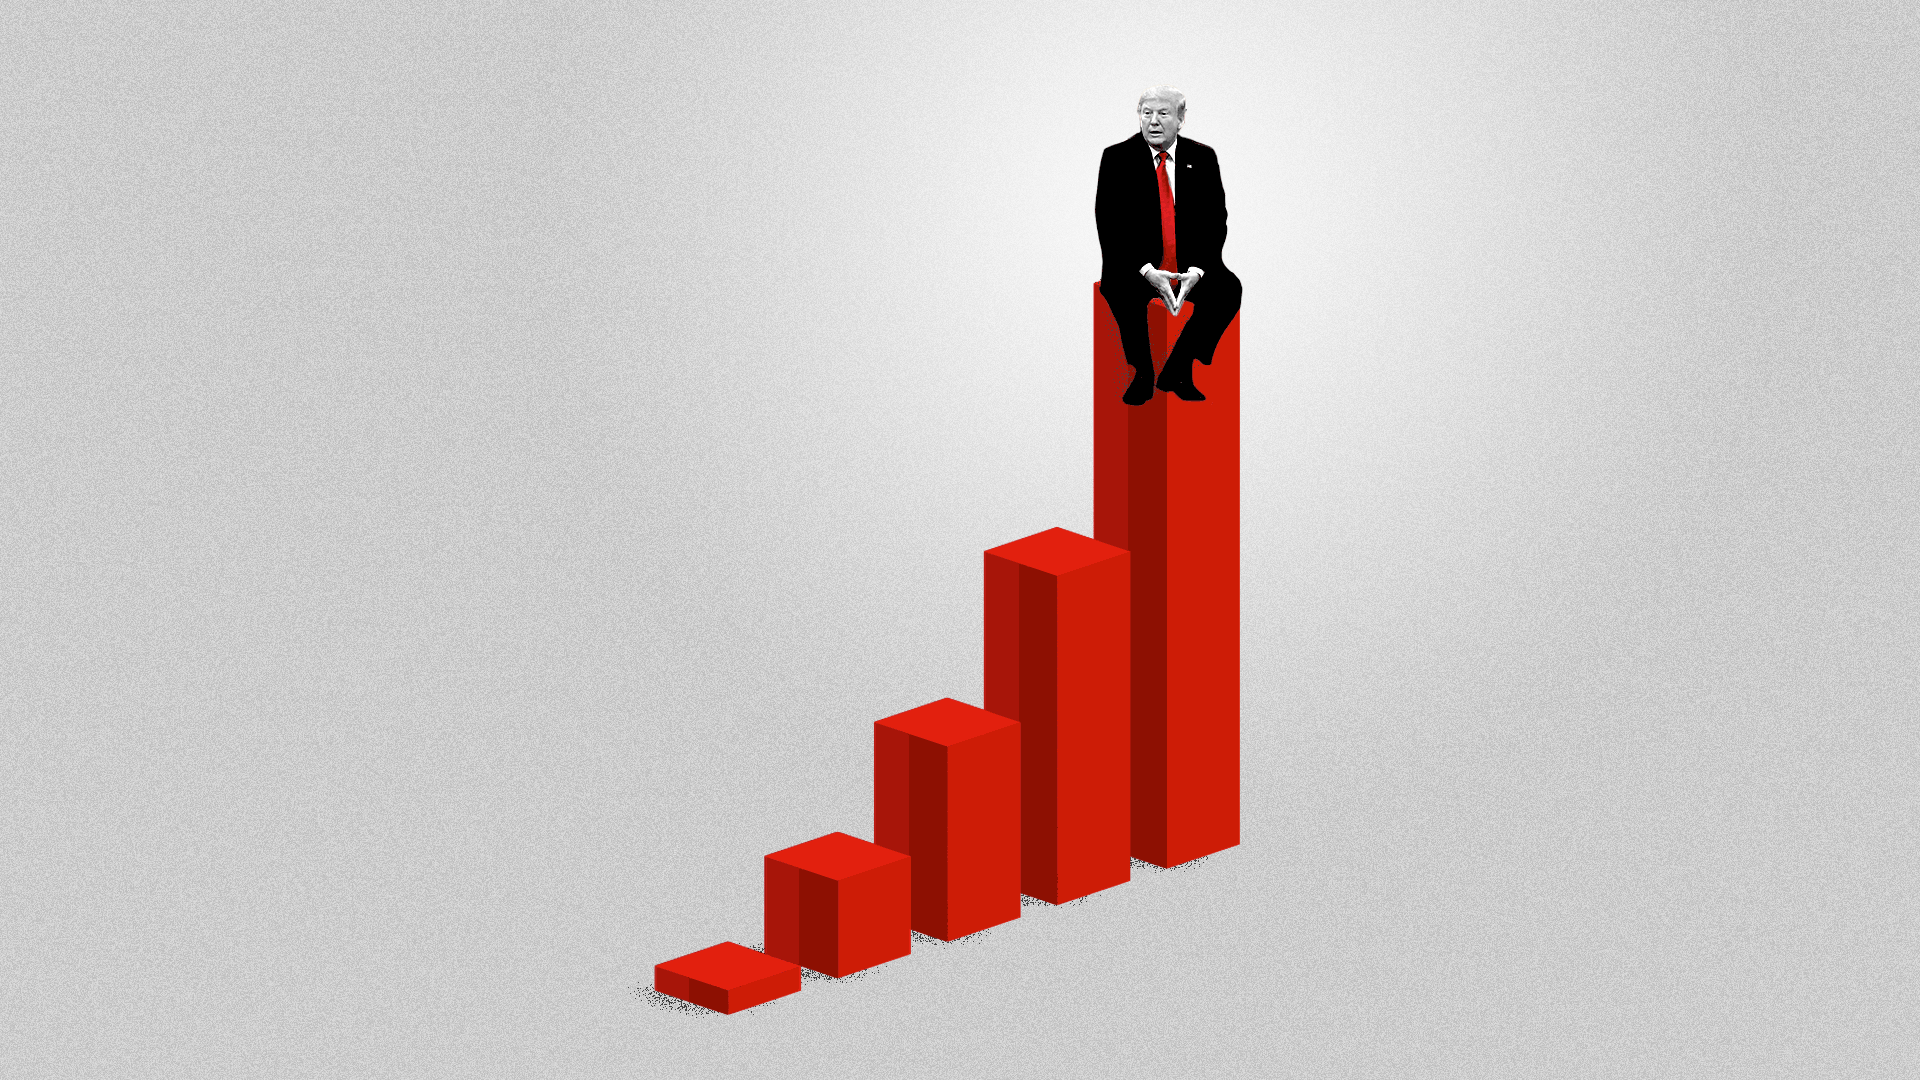 Illustration of President Trump sitting on the tallest of five bars of a bar chart.